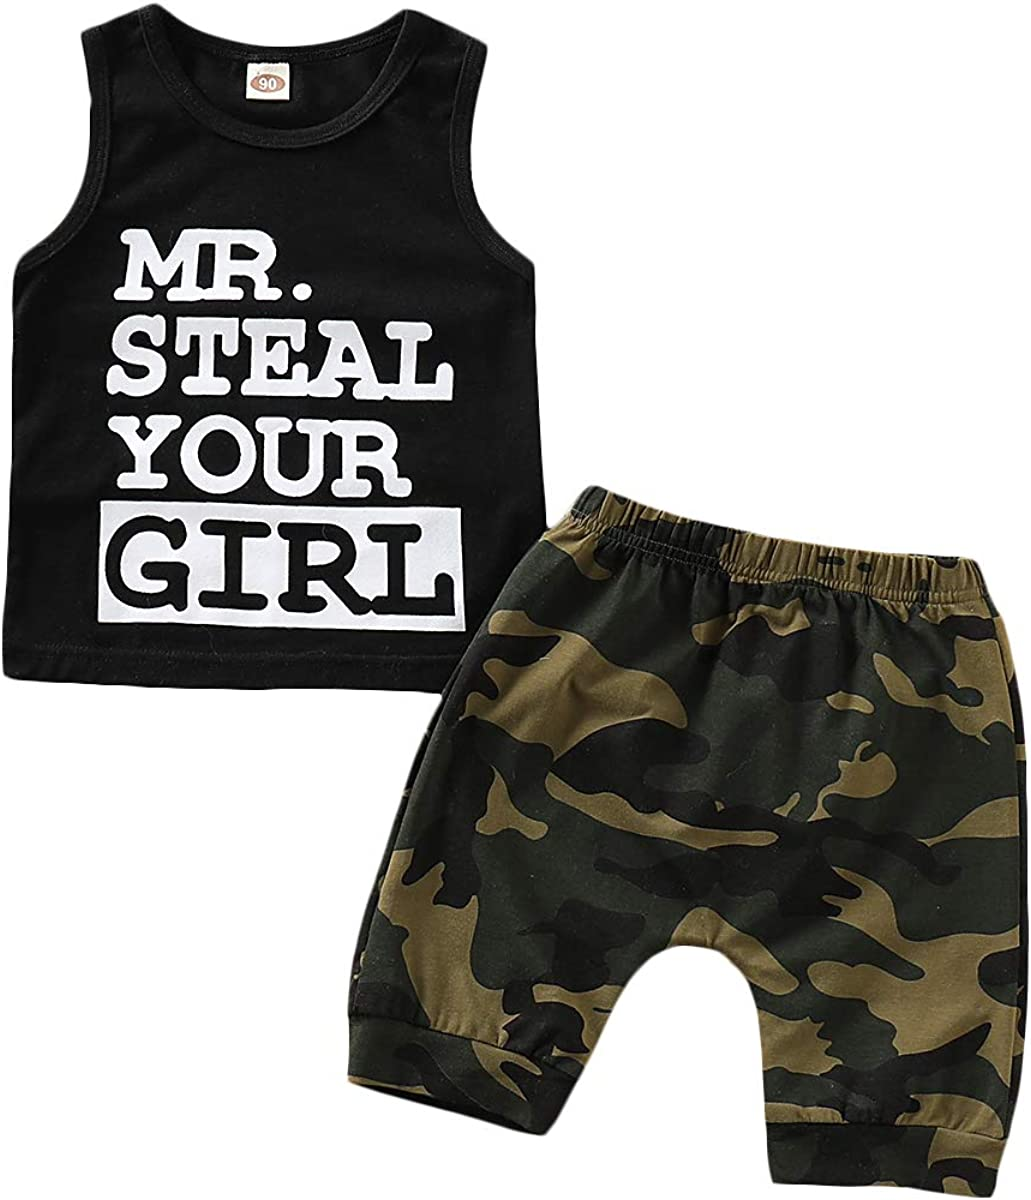 Camouflage Shorts Outfit Set AR-LLOYD Baby Boys Sleeveless Shorts Sets Infant Boy Mr Steal Your Girl Vest